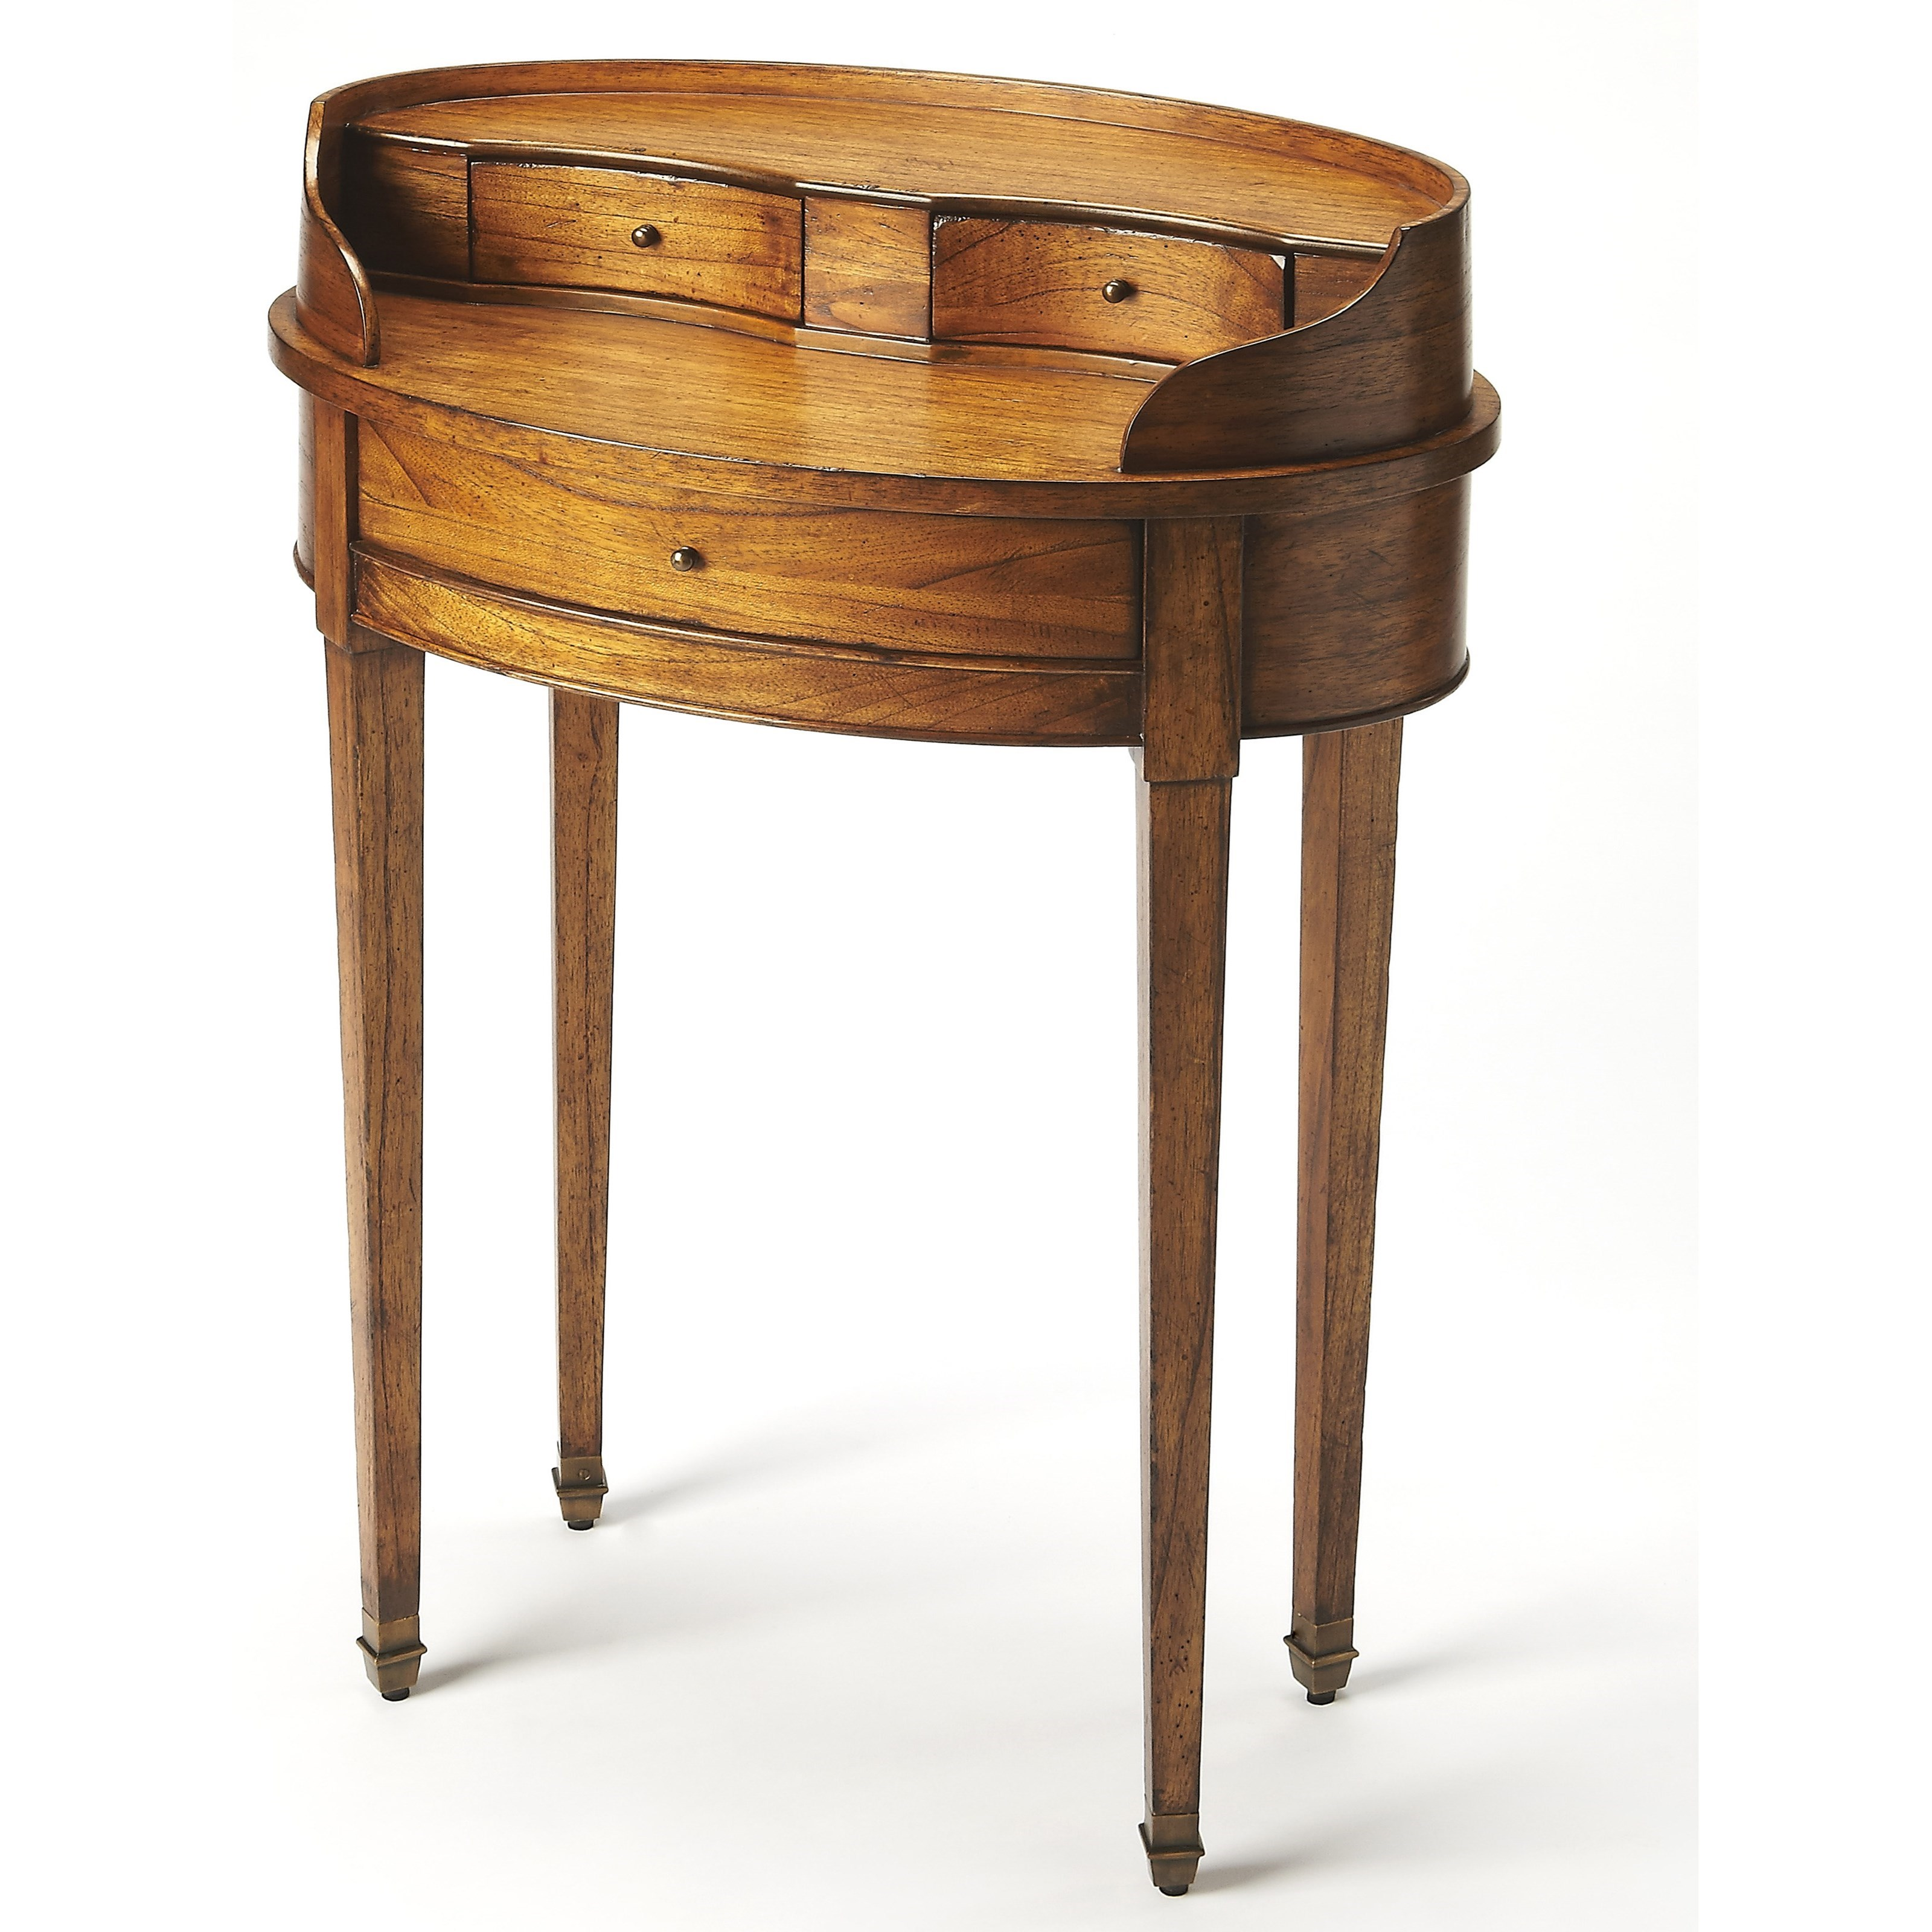 Butler Specialty Company Connoisseur's Writing Desk - Item Number: 6236350